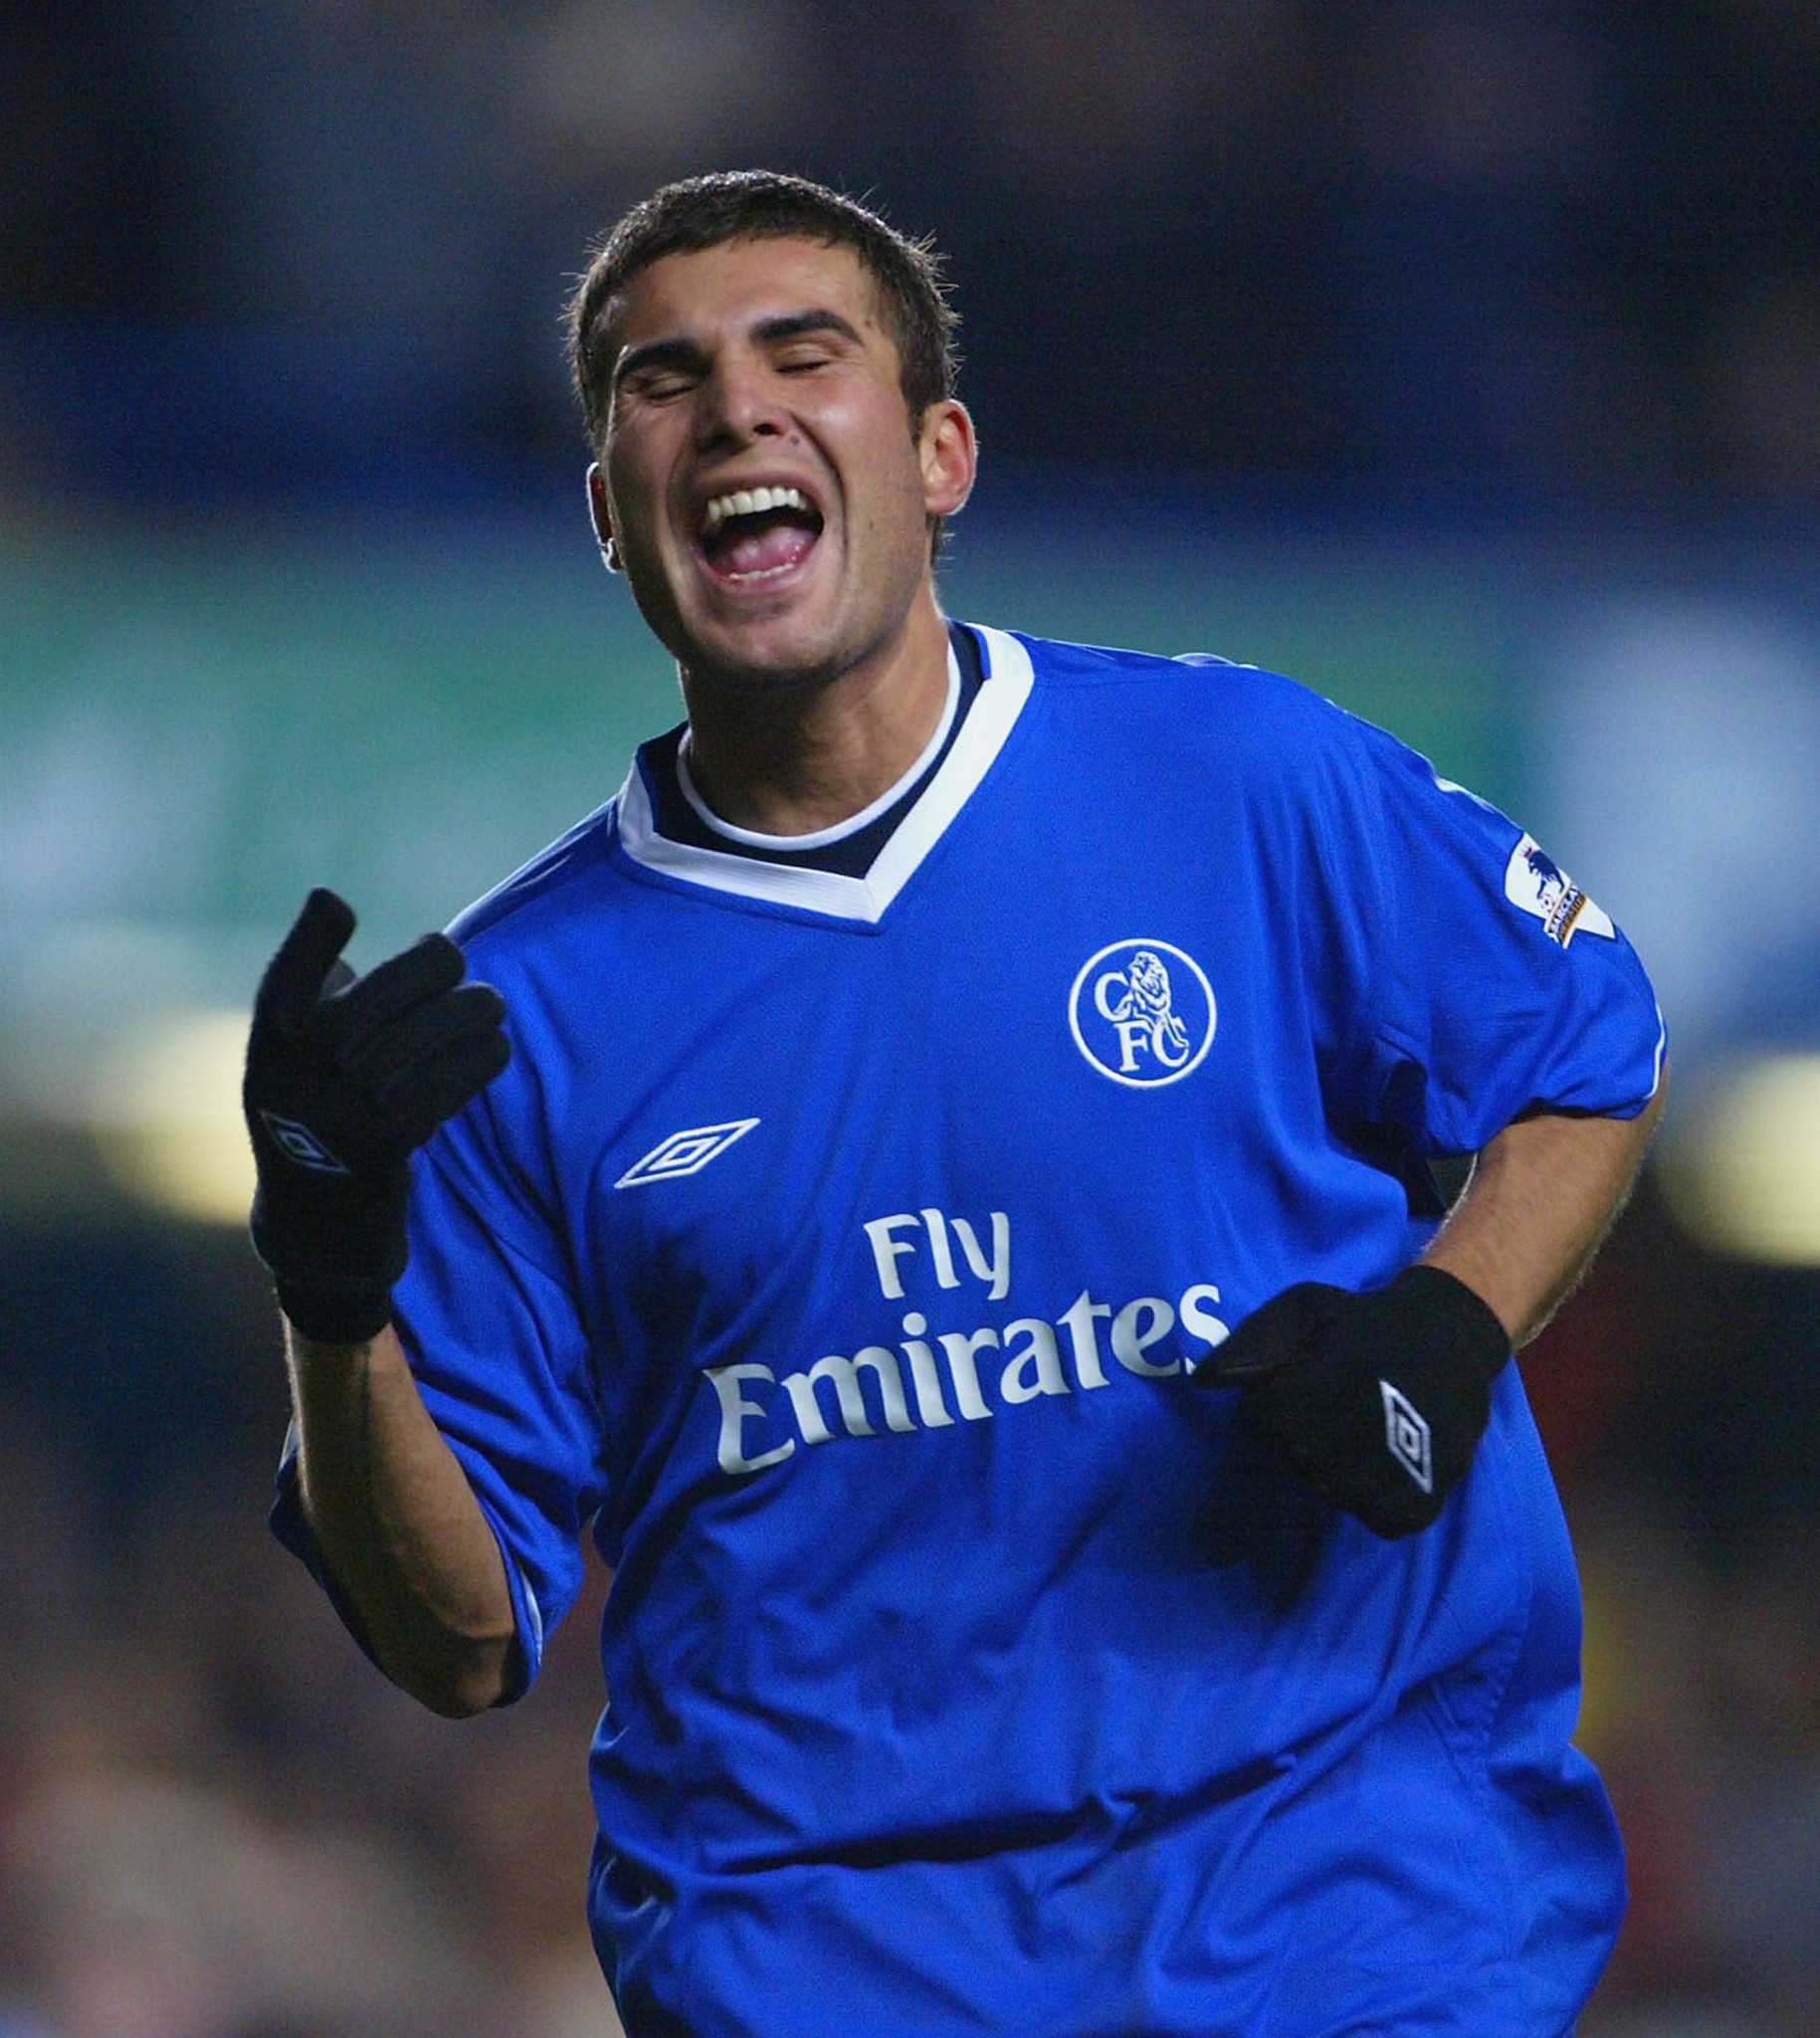 Former Romanian and Chelsea foottballer Adrian Mutu is another athlete convicted of doping and who took his case to the Court of Arbitration for Sport and wanted a hearing held so everyone could see it ©Getty Images